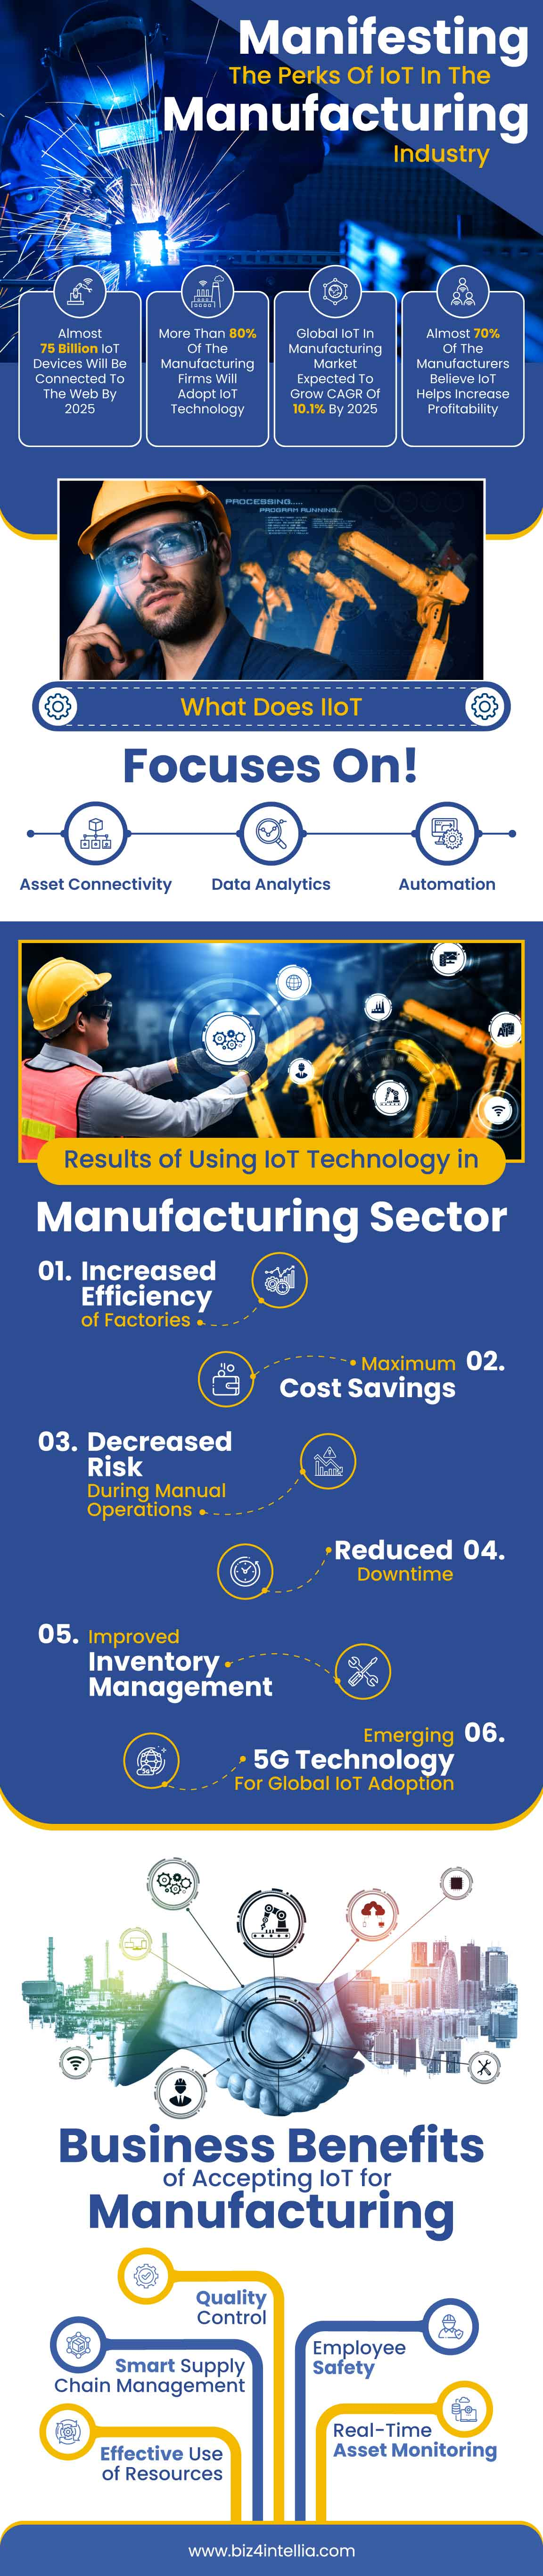 manifesting-the-perks-of-iot-in-the-manufacturing-industry